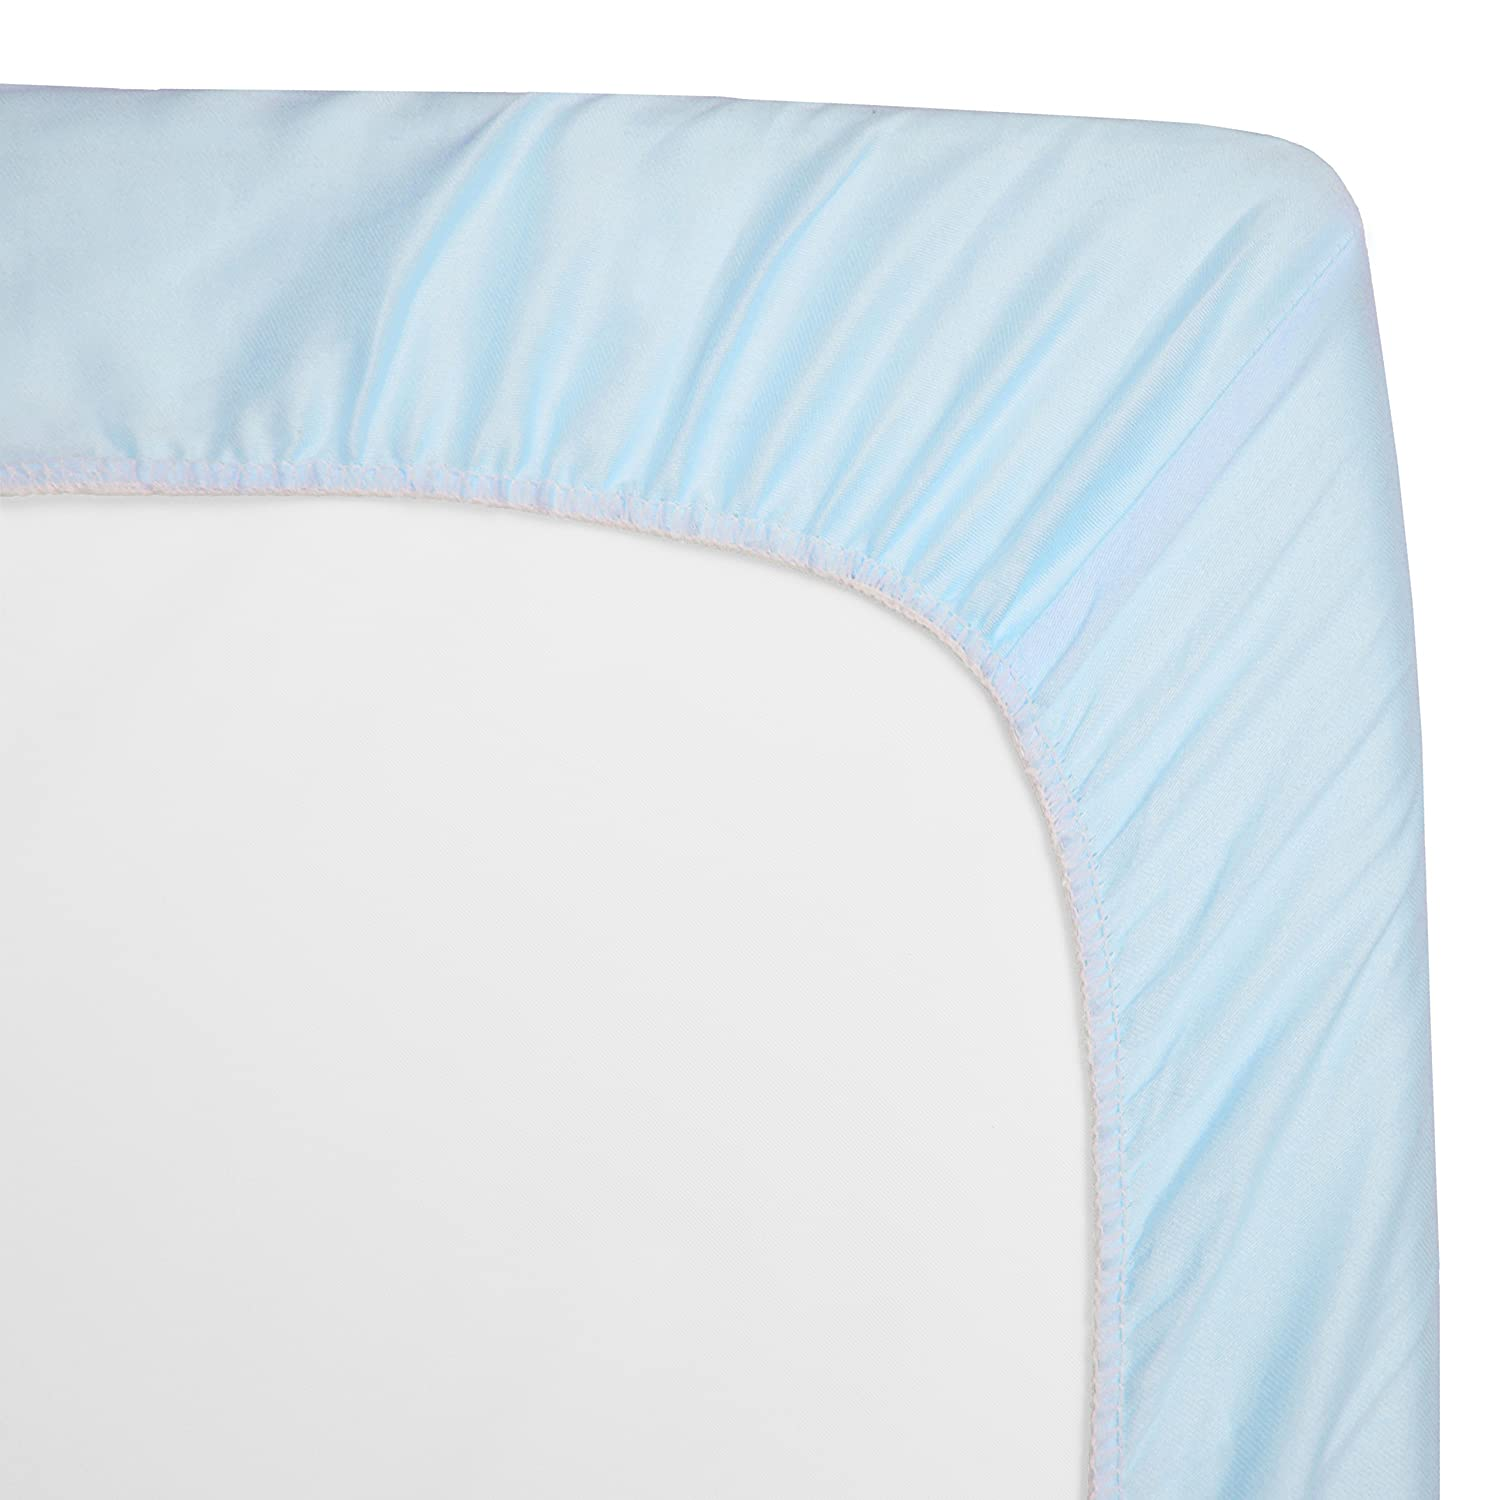 Blue Zigzag American Baby Company 100/% Natural Cotton Percale Fitted Crib Sheet for Standard Crib and Toddler Mattresses for Boys and Girls Soft Breathable